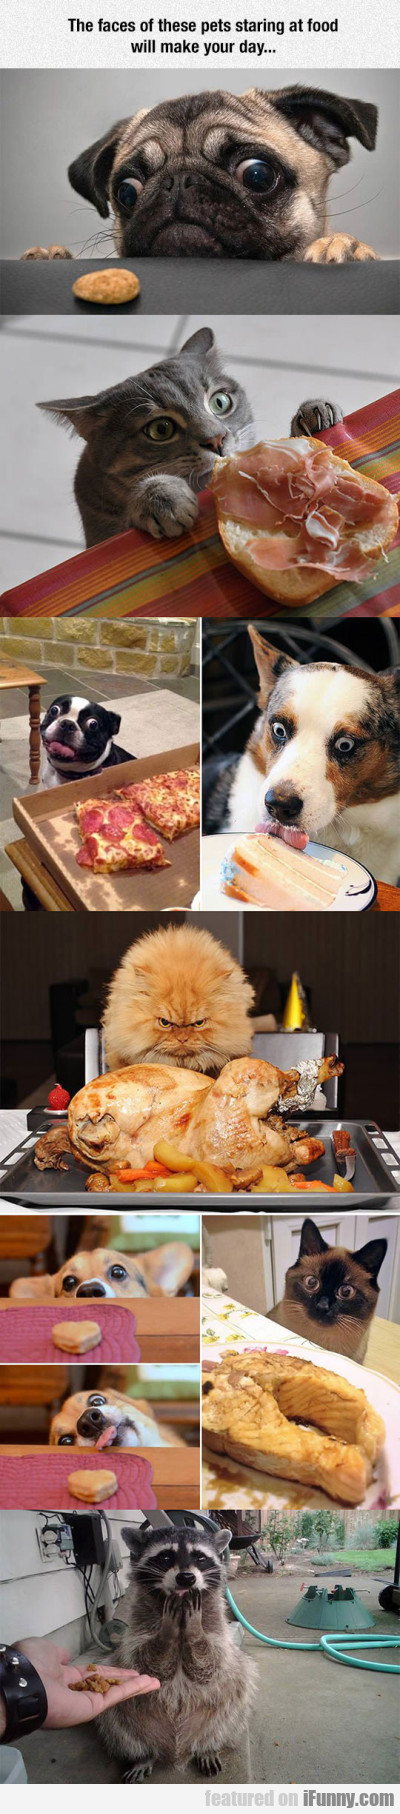 The Faces Of These Pets Staring At Food